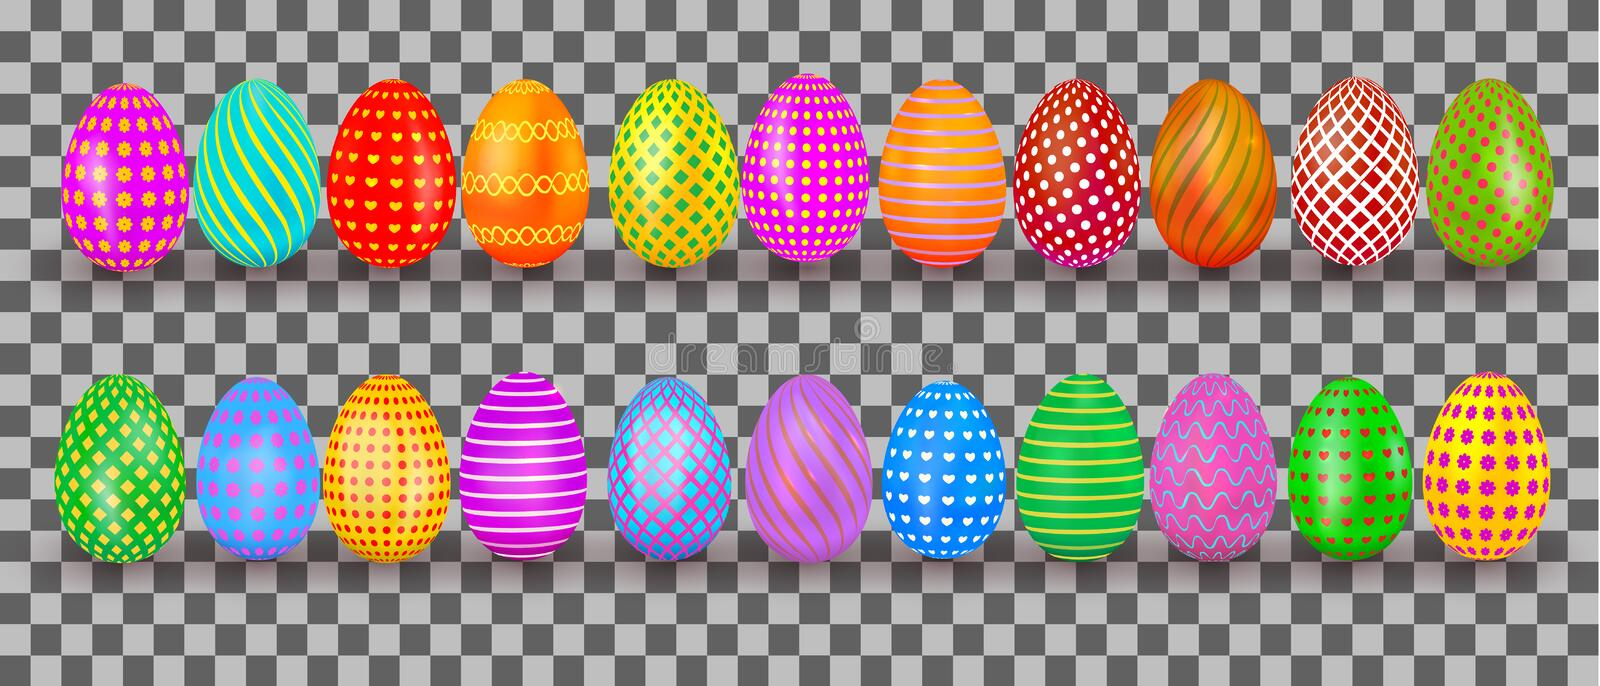 Easter eggs set. Colorful realistic egg with pattern isolated on transparent background. Holiday design element for banner, poster vector illustration